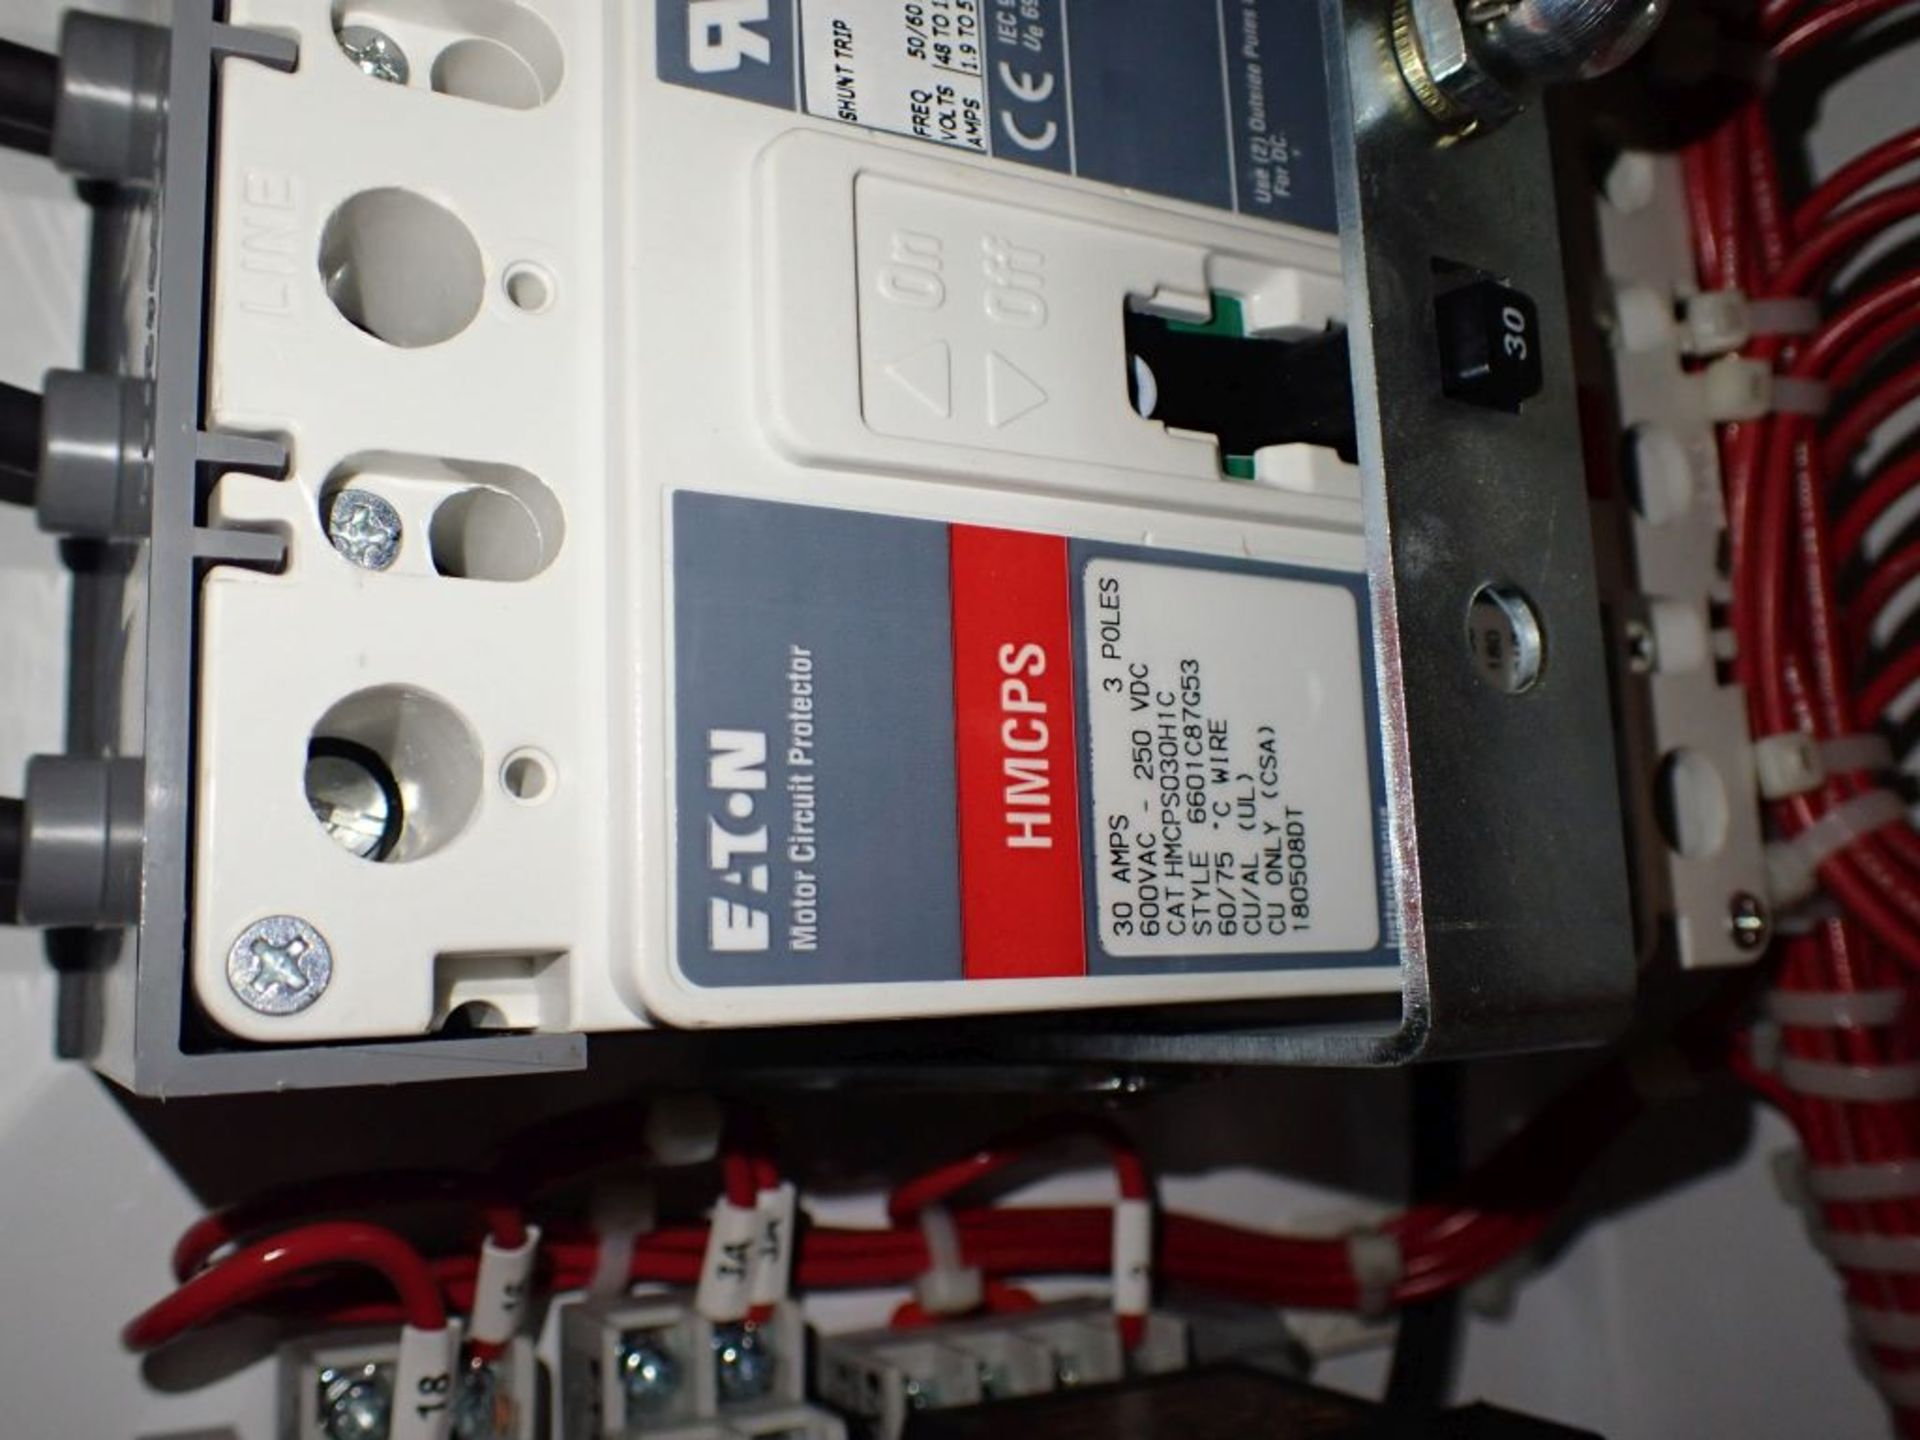 Eaton Freedom 2100 Series Motor Control Center | (11) F206-30A-10HP; (5) F206-15A-10HP; (1) SVX900- - Image 18 of 102